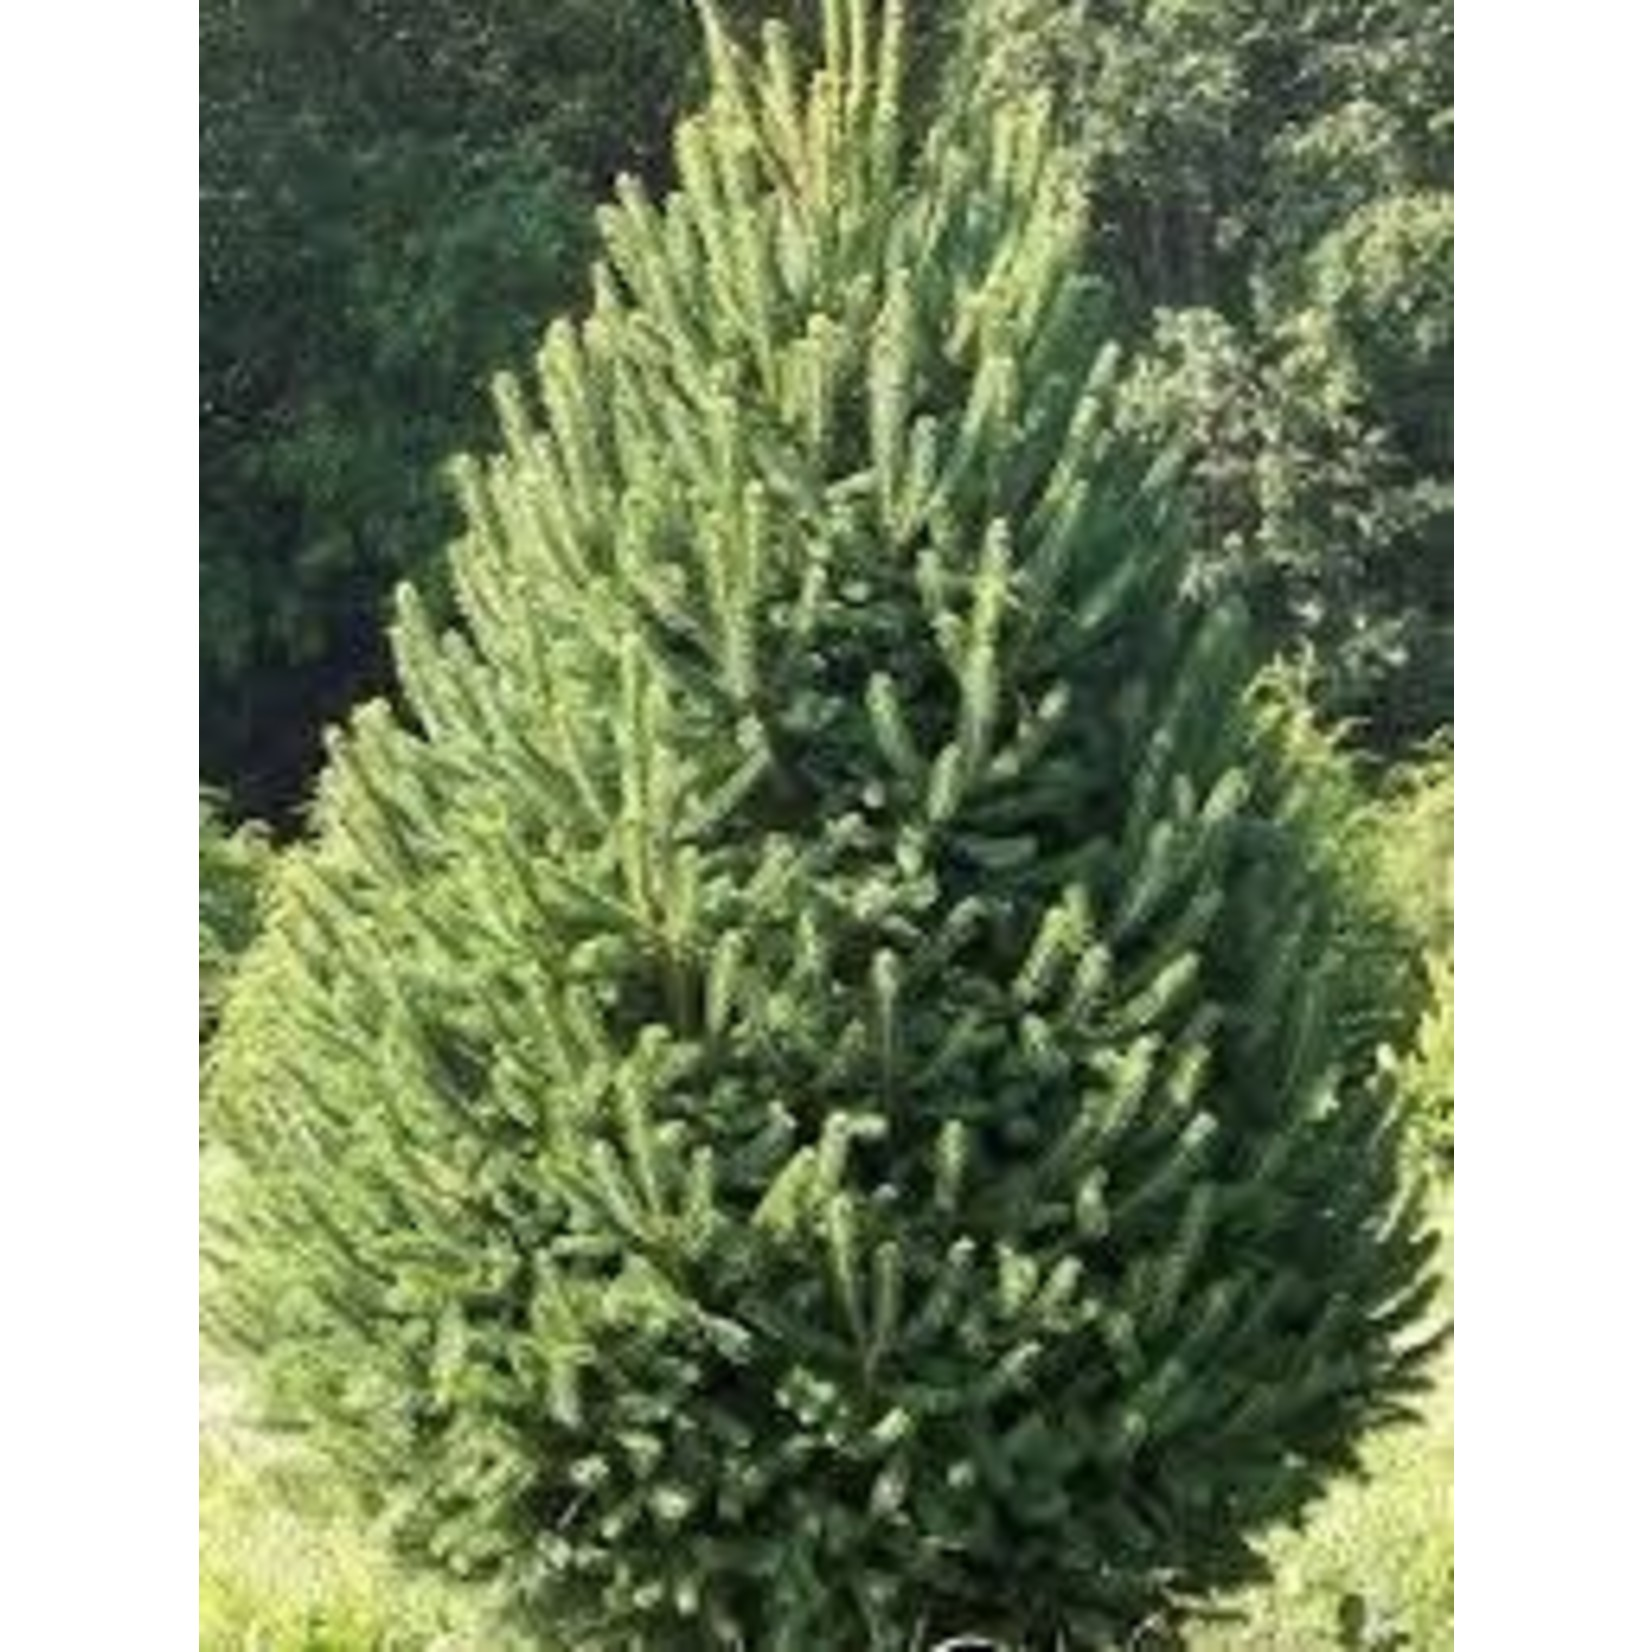 White Spruce 'North Pole' - 3-4' potted